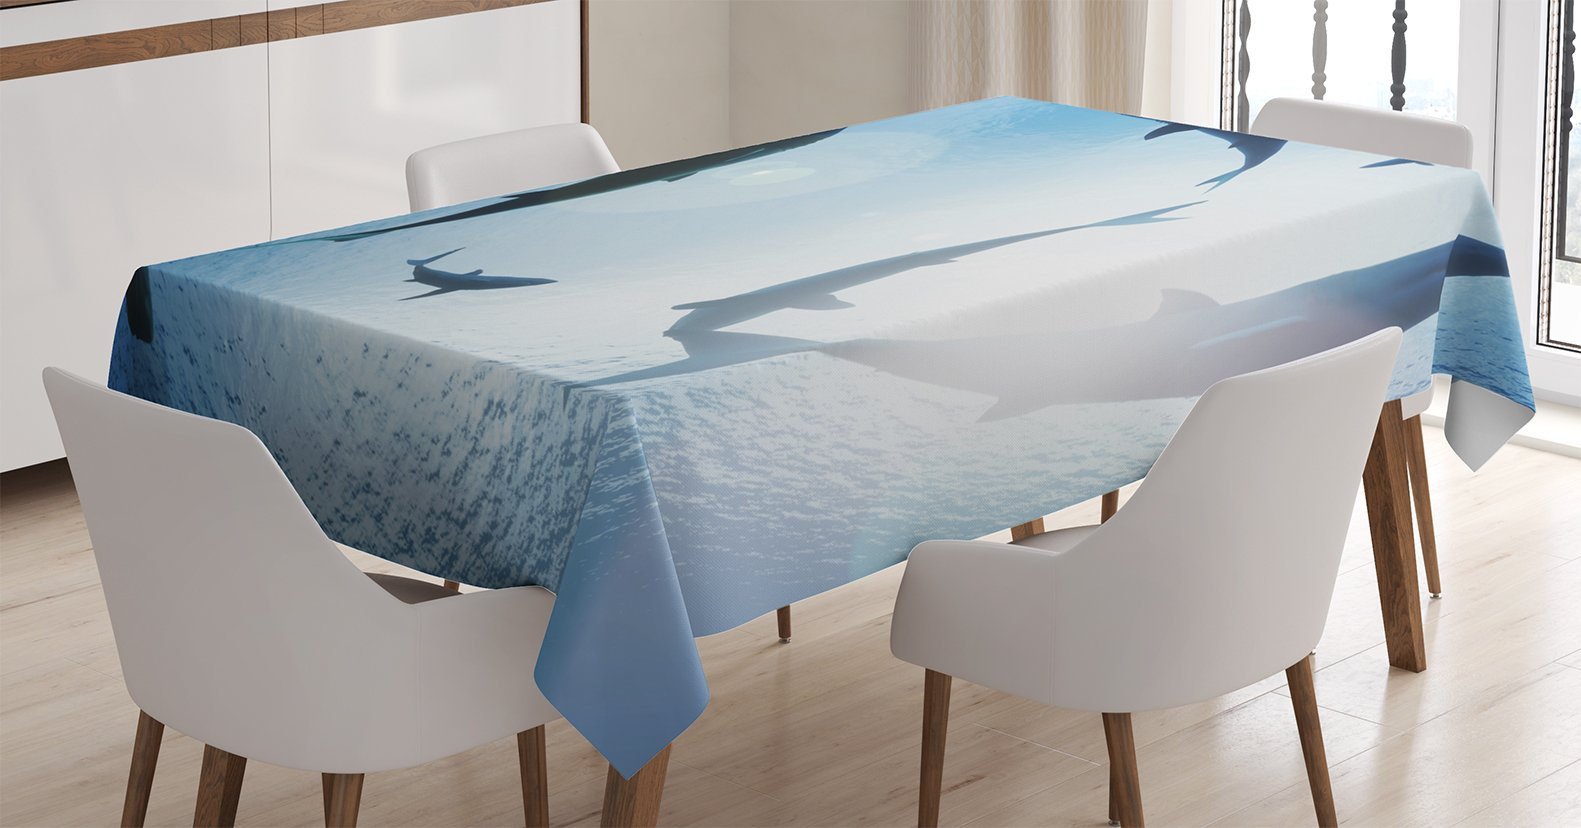 Ambesonne Sea Animals Decor Tablecloth, School of Sharks Circling from Above Aggressive Creature Scary Threat, Dining Room Kitchen Rectangular Table Cover, 52 X 70 inches